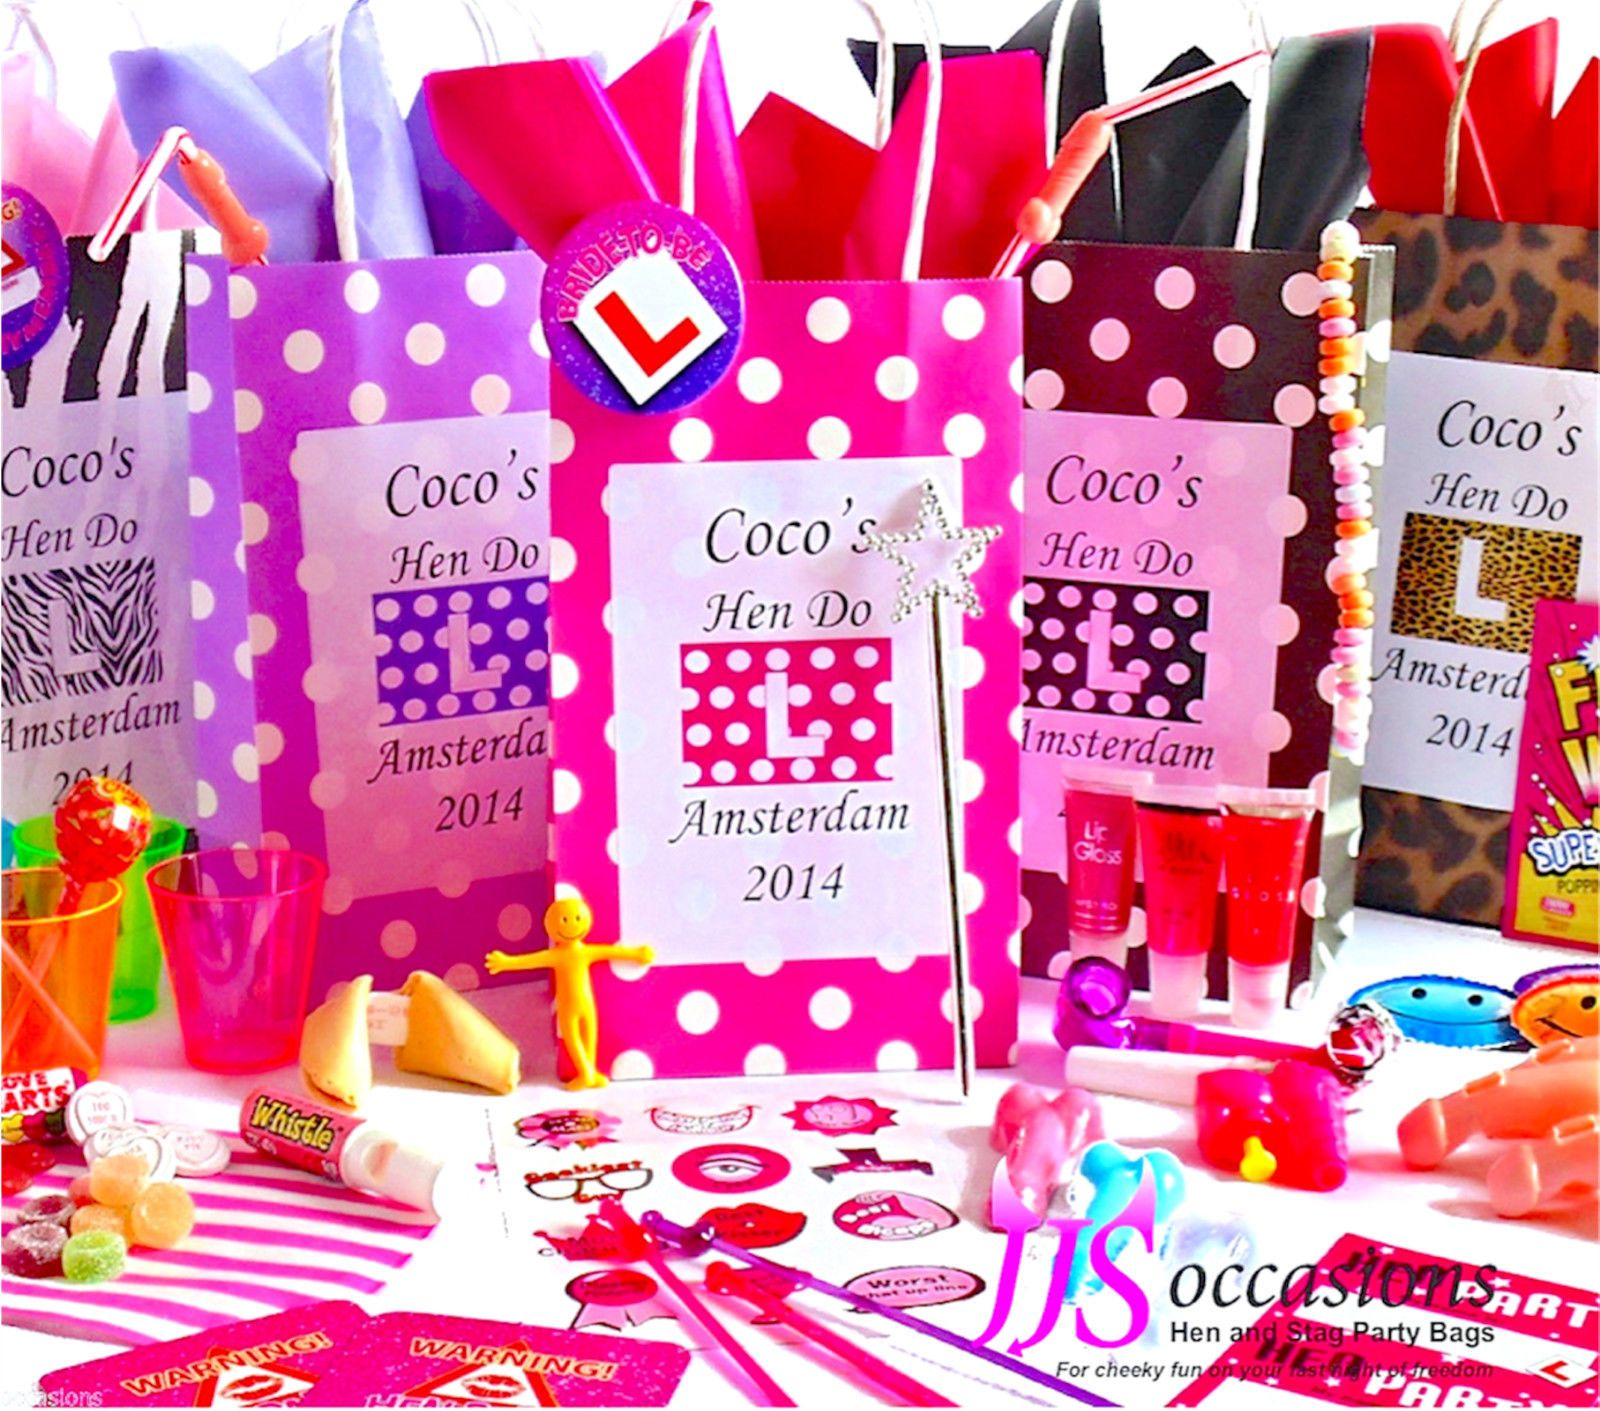 hen party bag 8 items create your own personalised filled gift fun